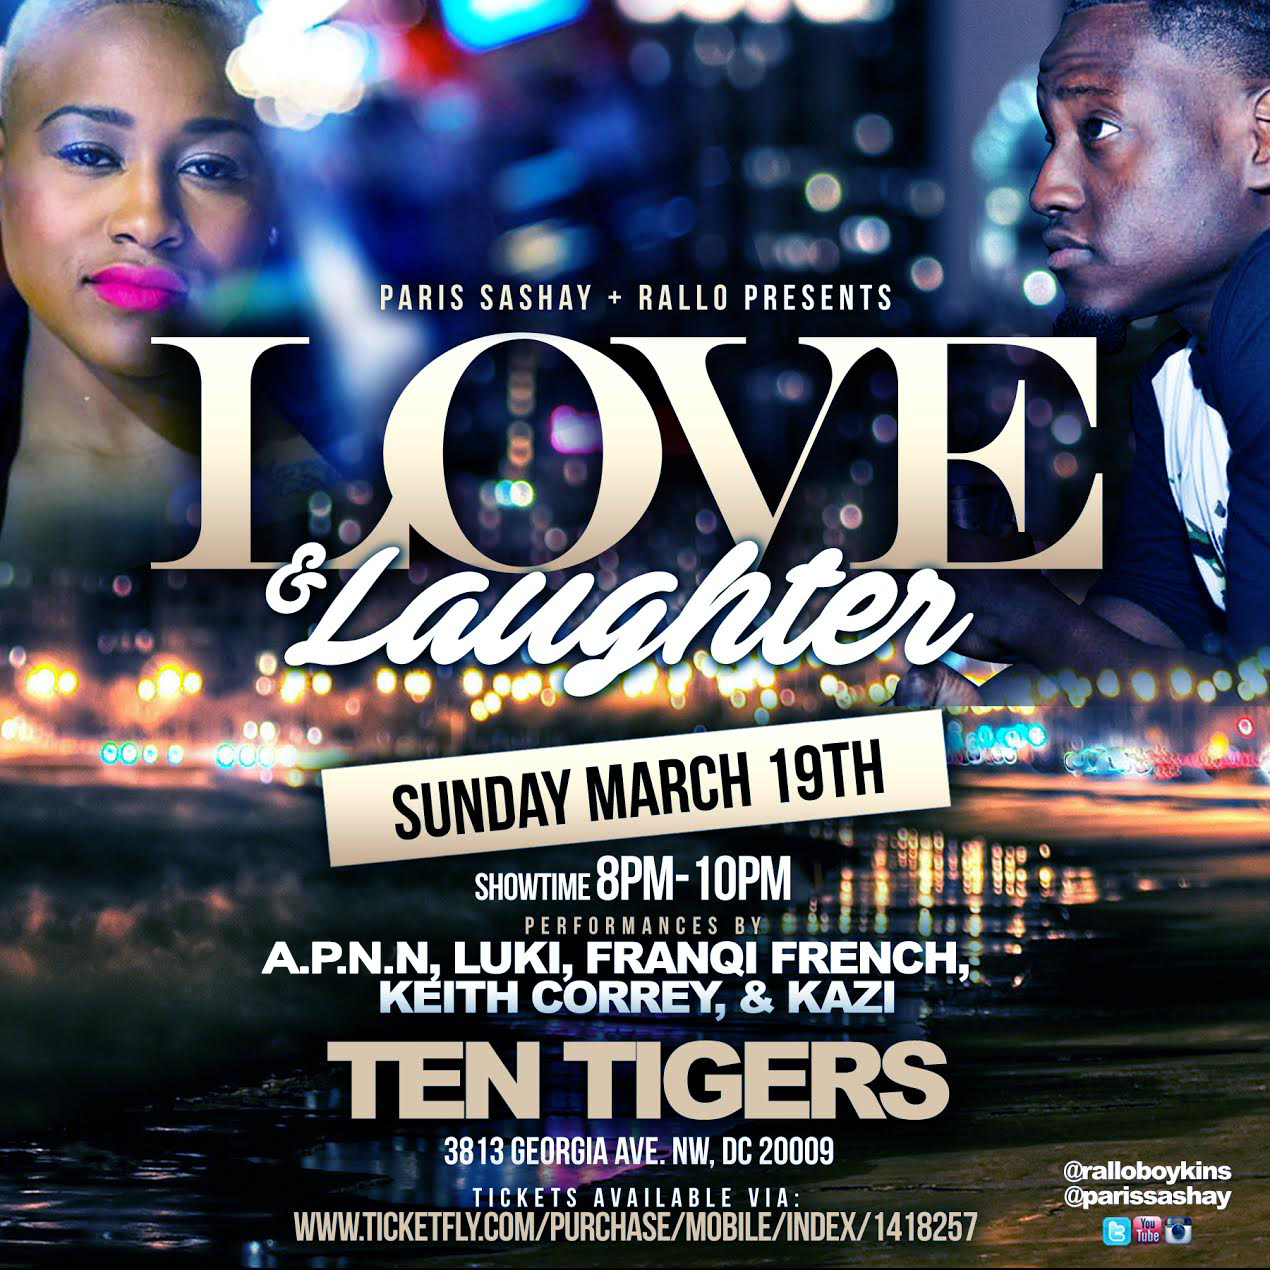 Love and Laughter Sunday, Fev 12th 8:oopm - 1o:oopm Ten Tigers| 3813 Georgia Ave. | Washington,DC 20009   Tickets